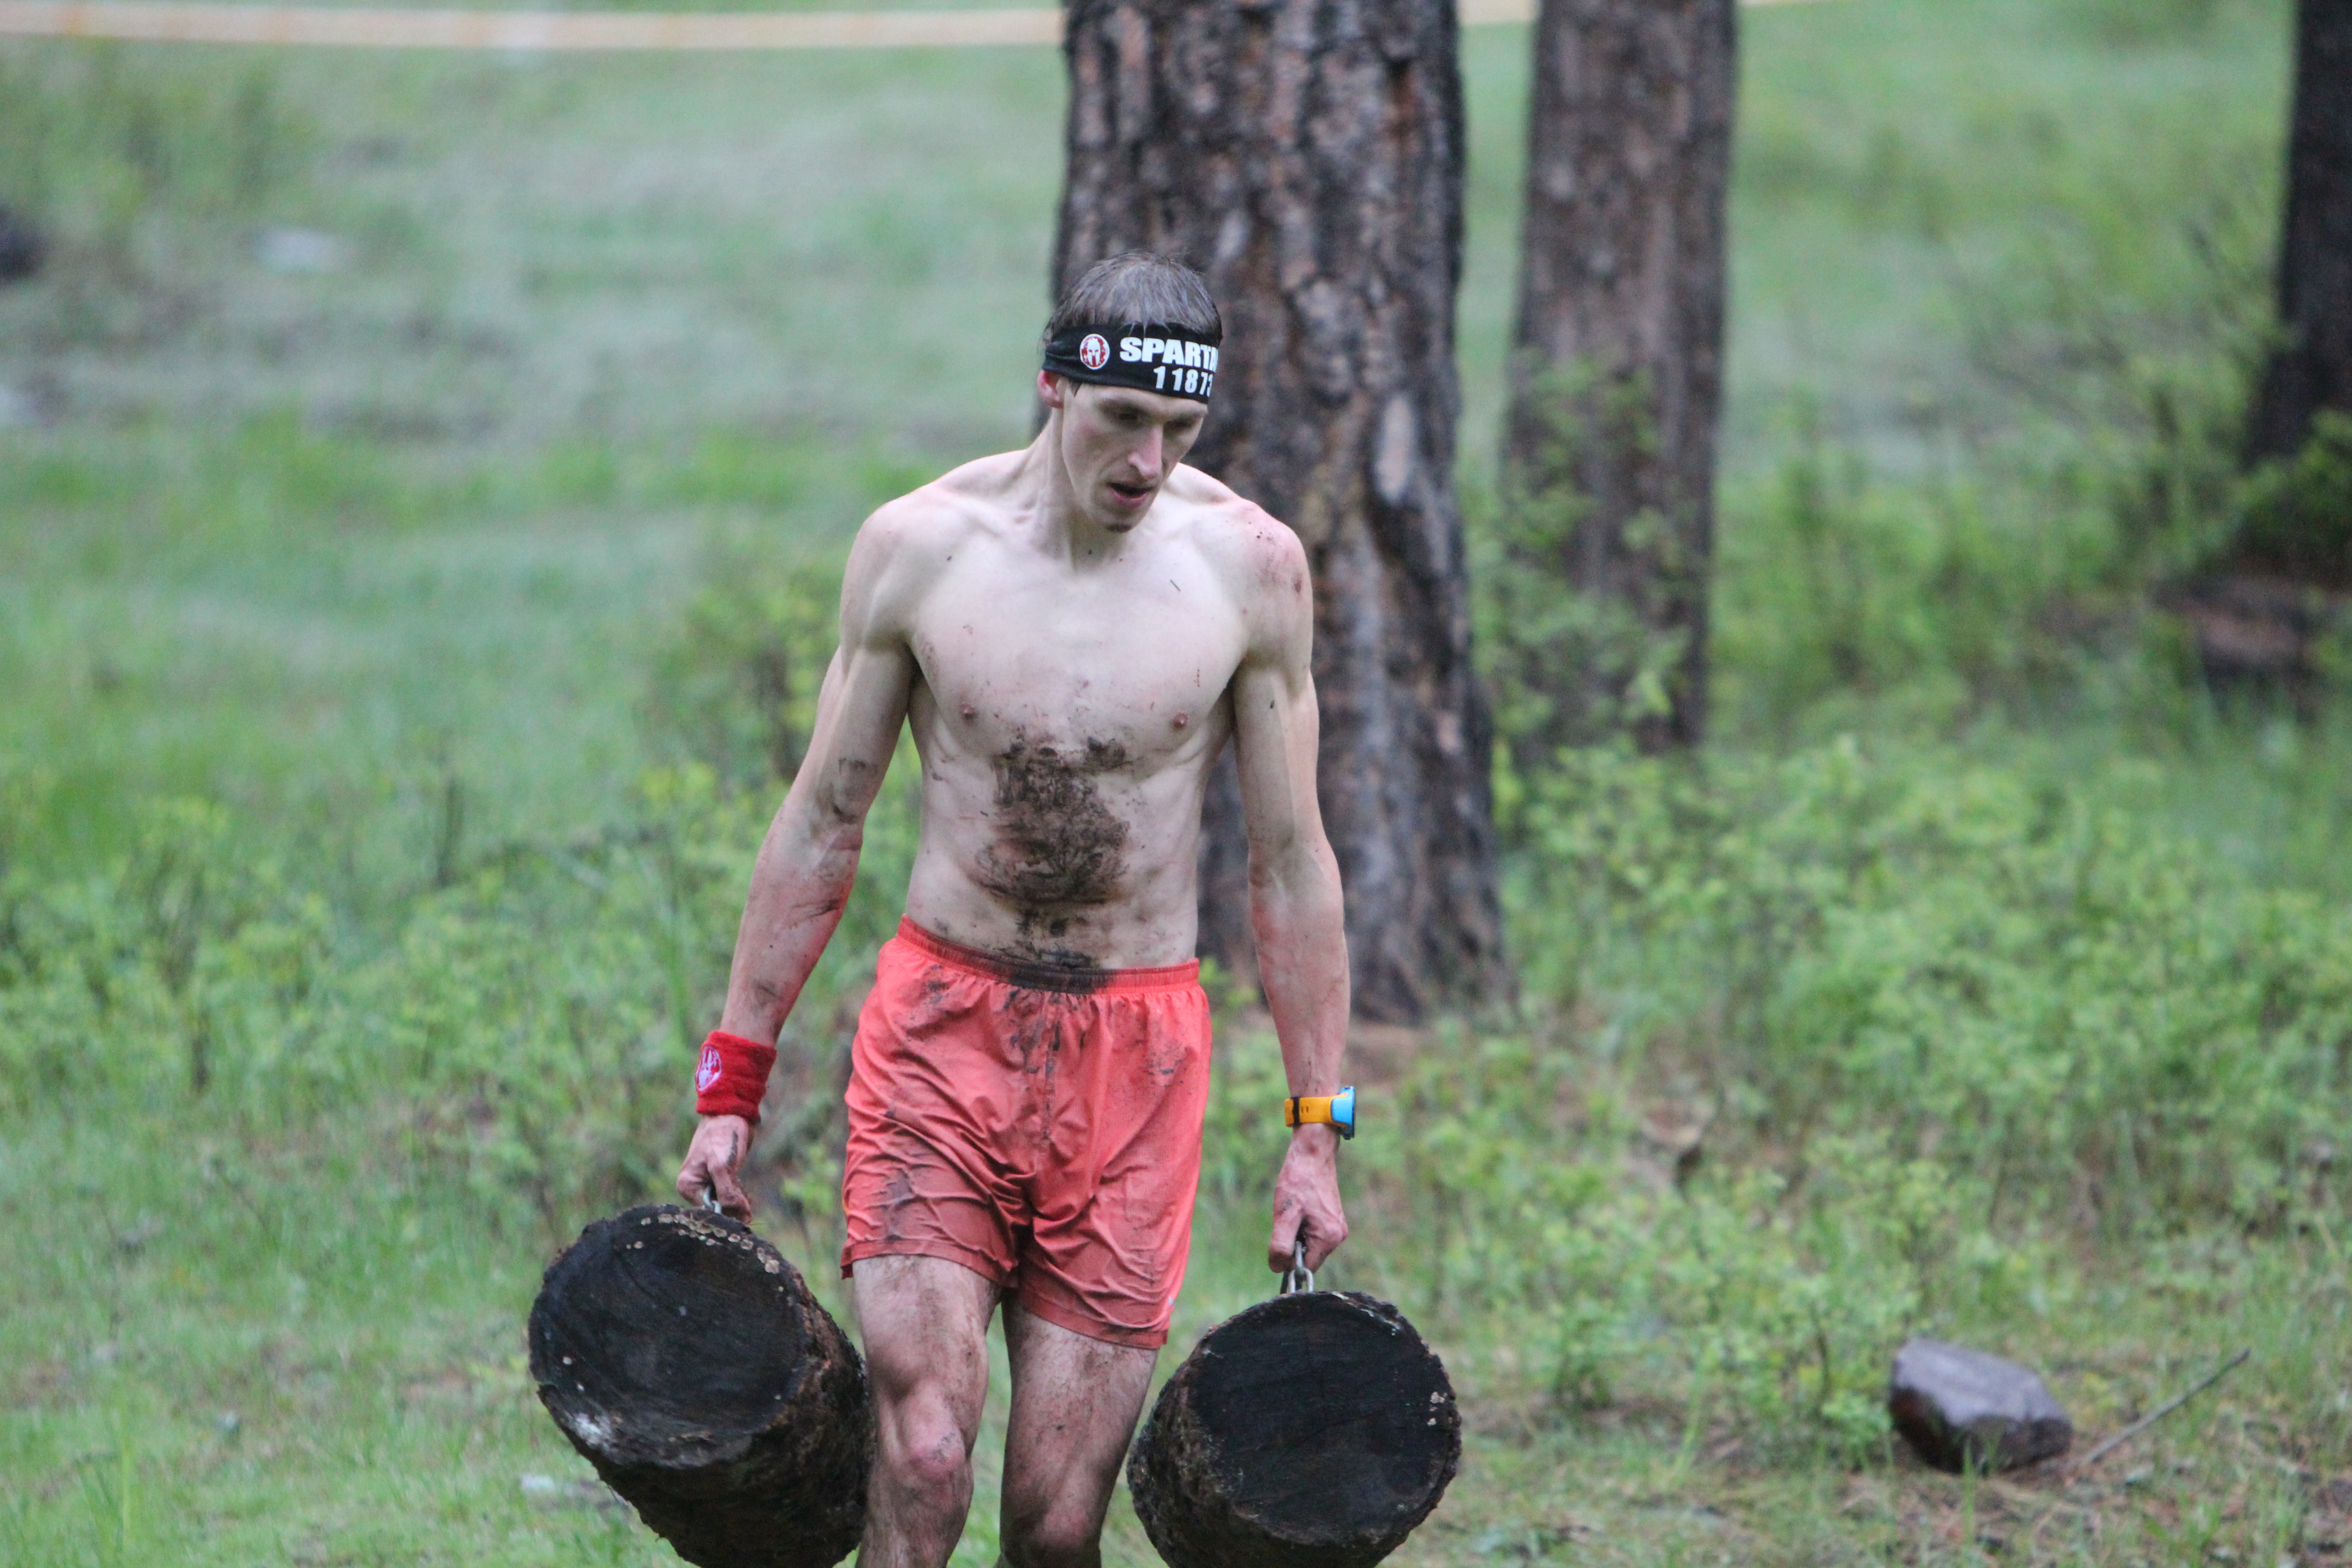 Episode 126: Team AMA Pro OCR Athlete Ian Hosek Reviews Spartan World Championships